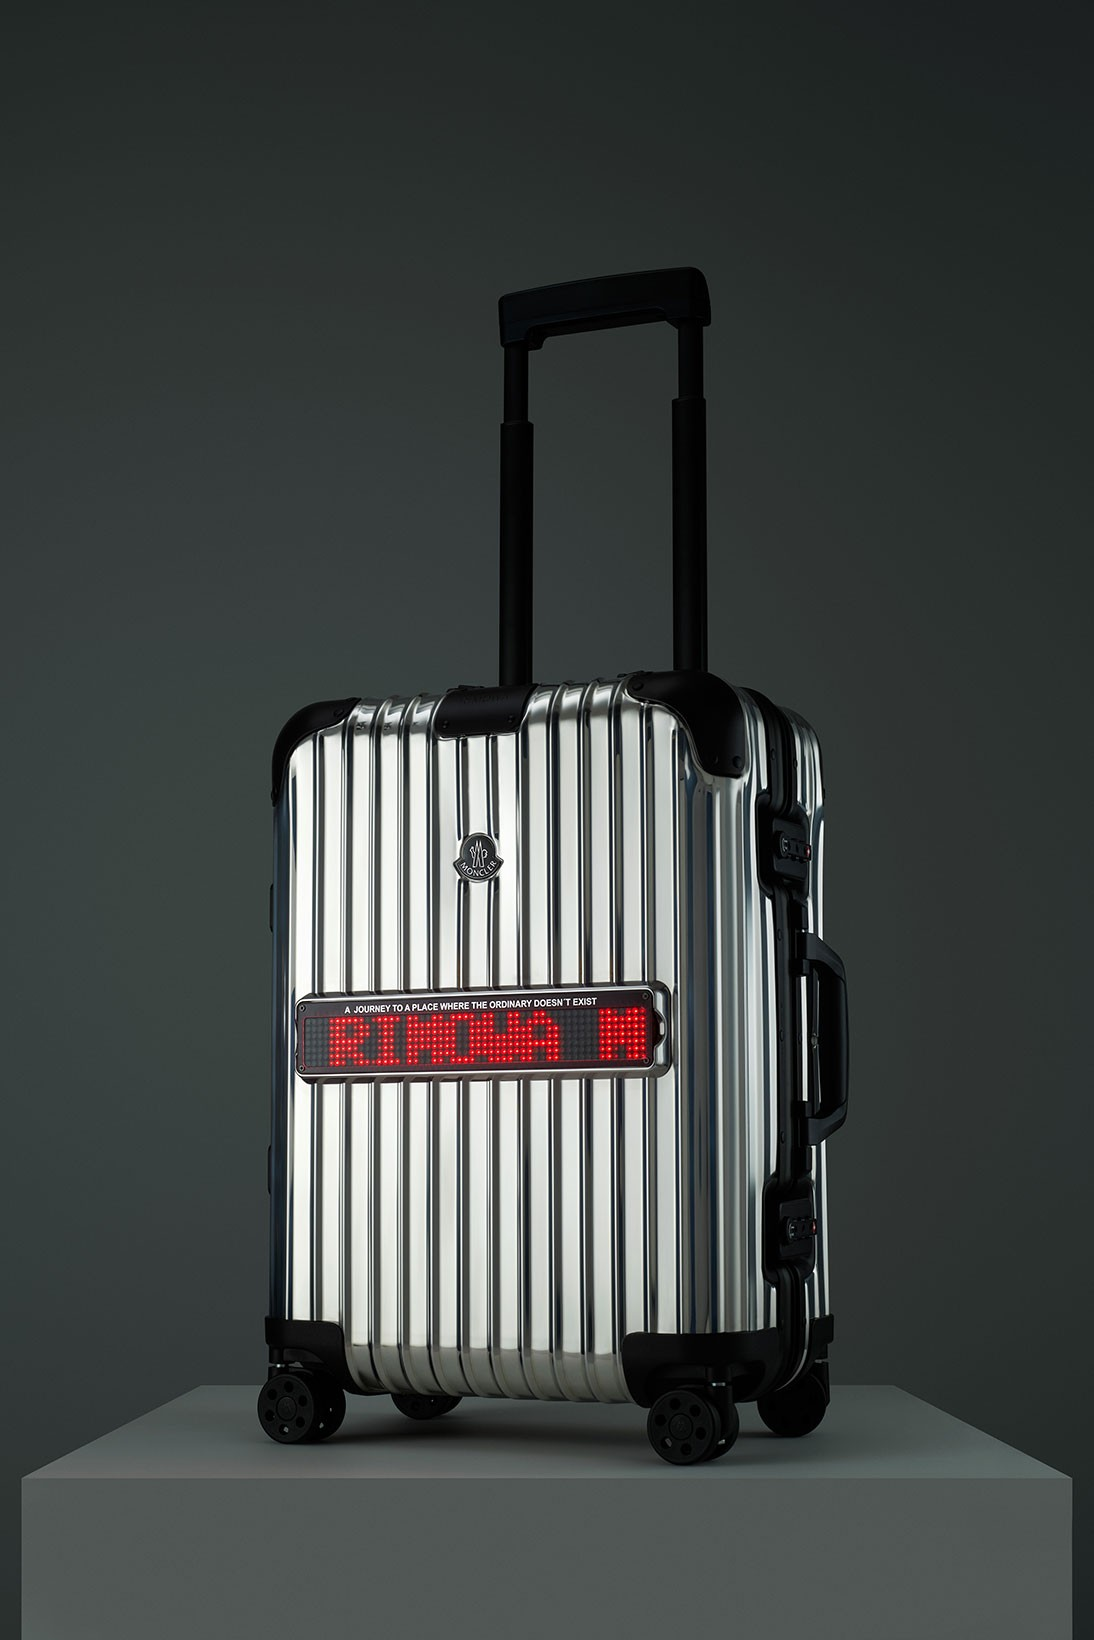 rimowa moncler genius reflection collaboration suitcase luggage